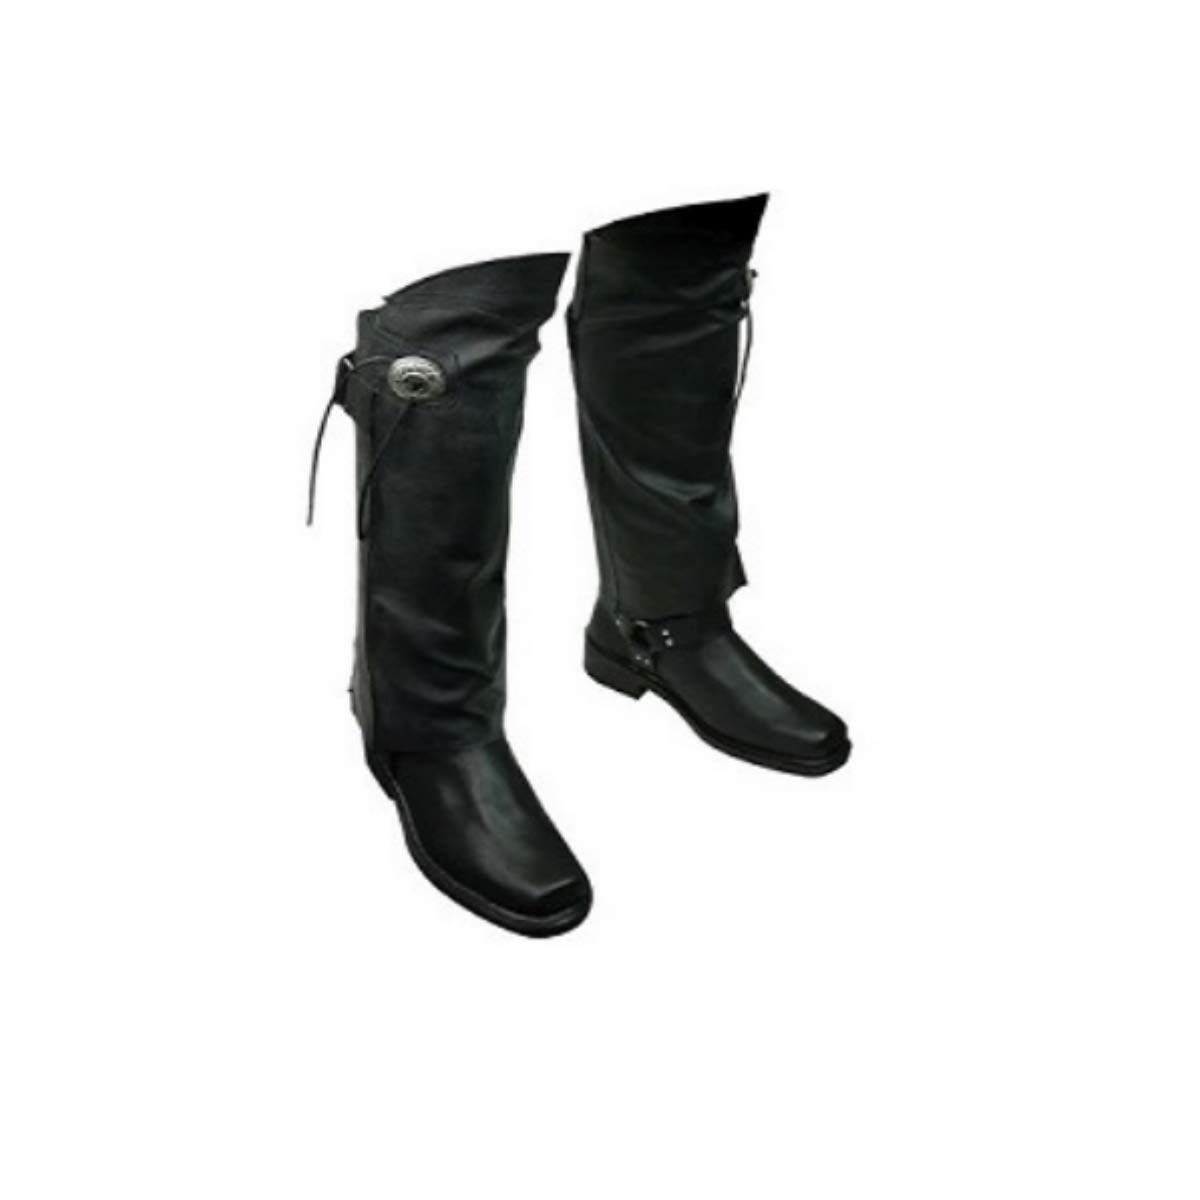 The Nekid Cow | Leather Motorcycle Half Chaps Short Gaiter Stay Up Lined Leg Warmers with Zipper and Velcro with Concho & Fringes for Horse Riders, Bikers, Motorcycle Men and Woman (3X- 4X)